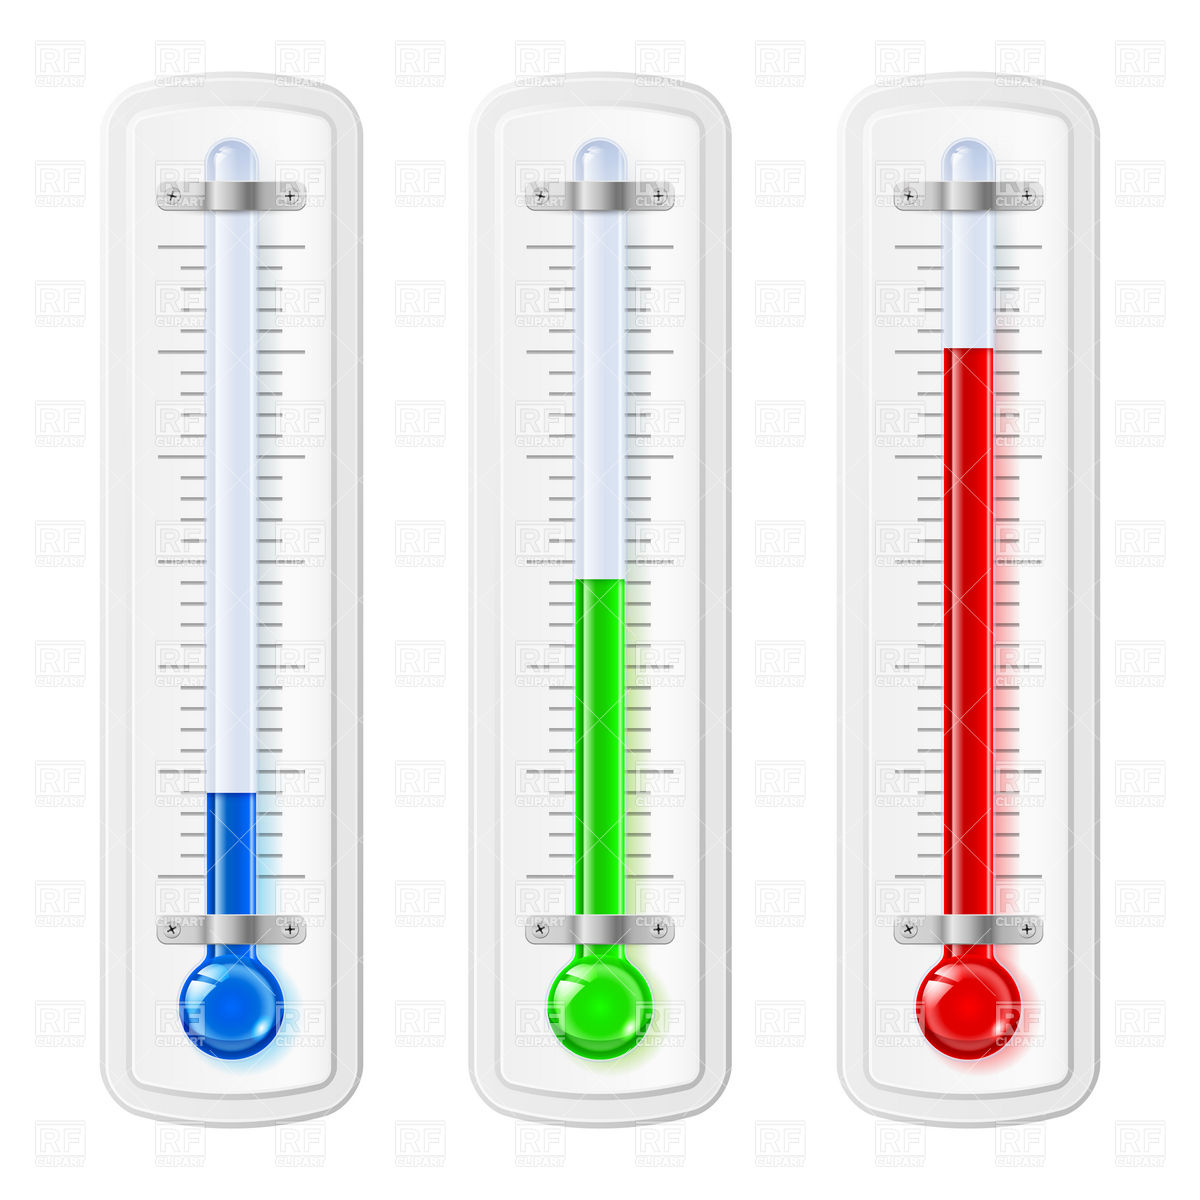 Thermometer 0 clipart clip art freeuse Hot And Cold Thermometer | Free download best Hot And Cold ... clip art freeuse